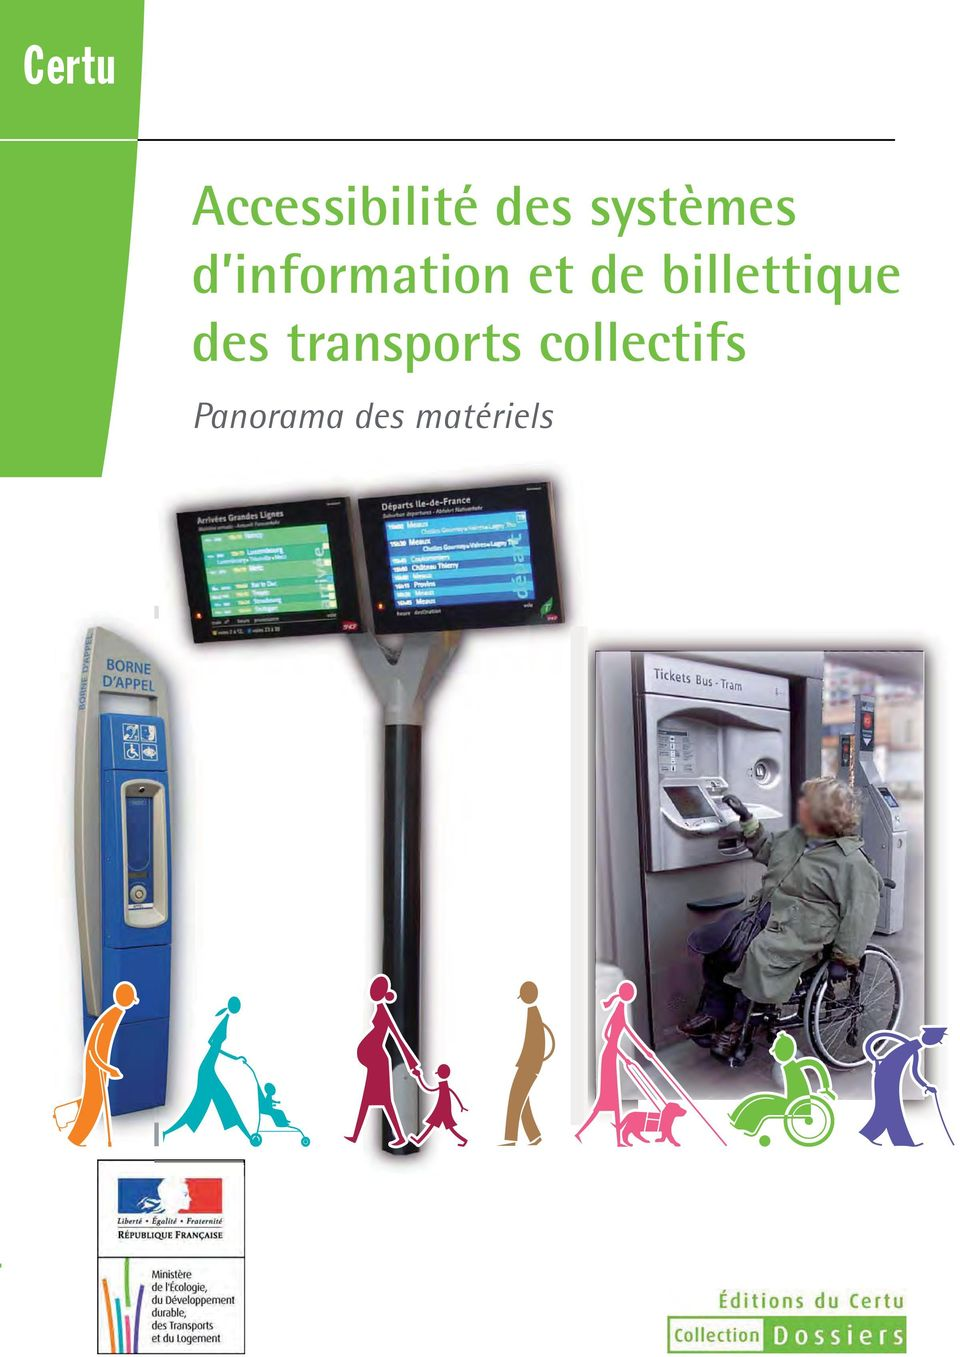 billettique des transports